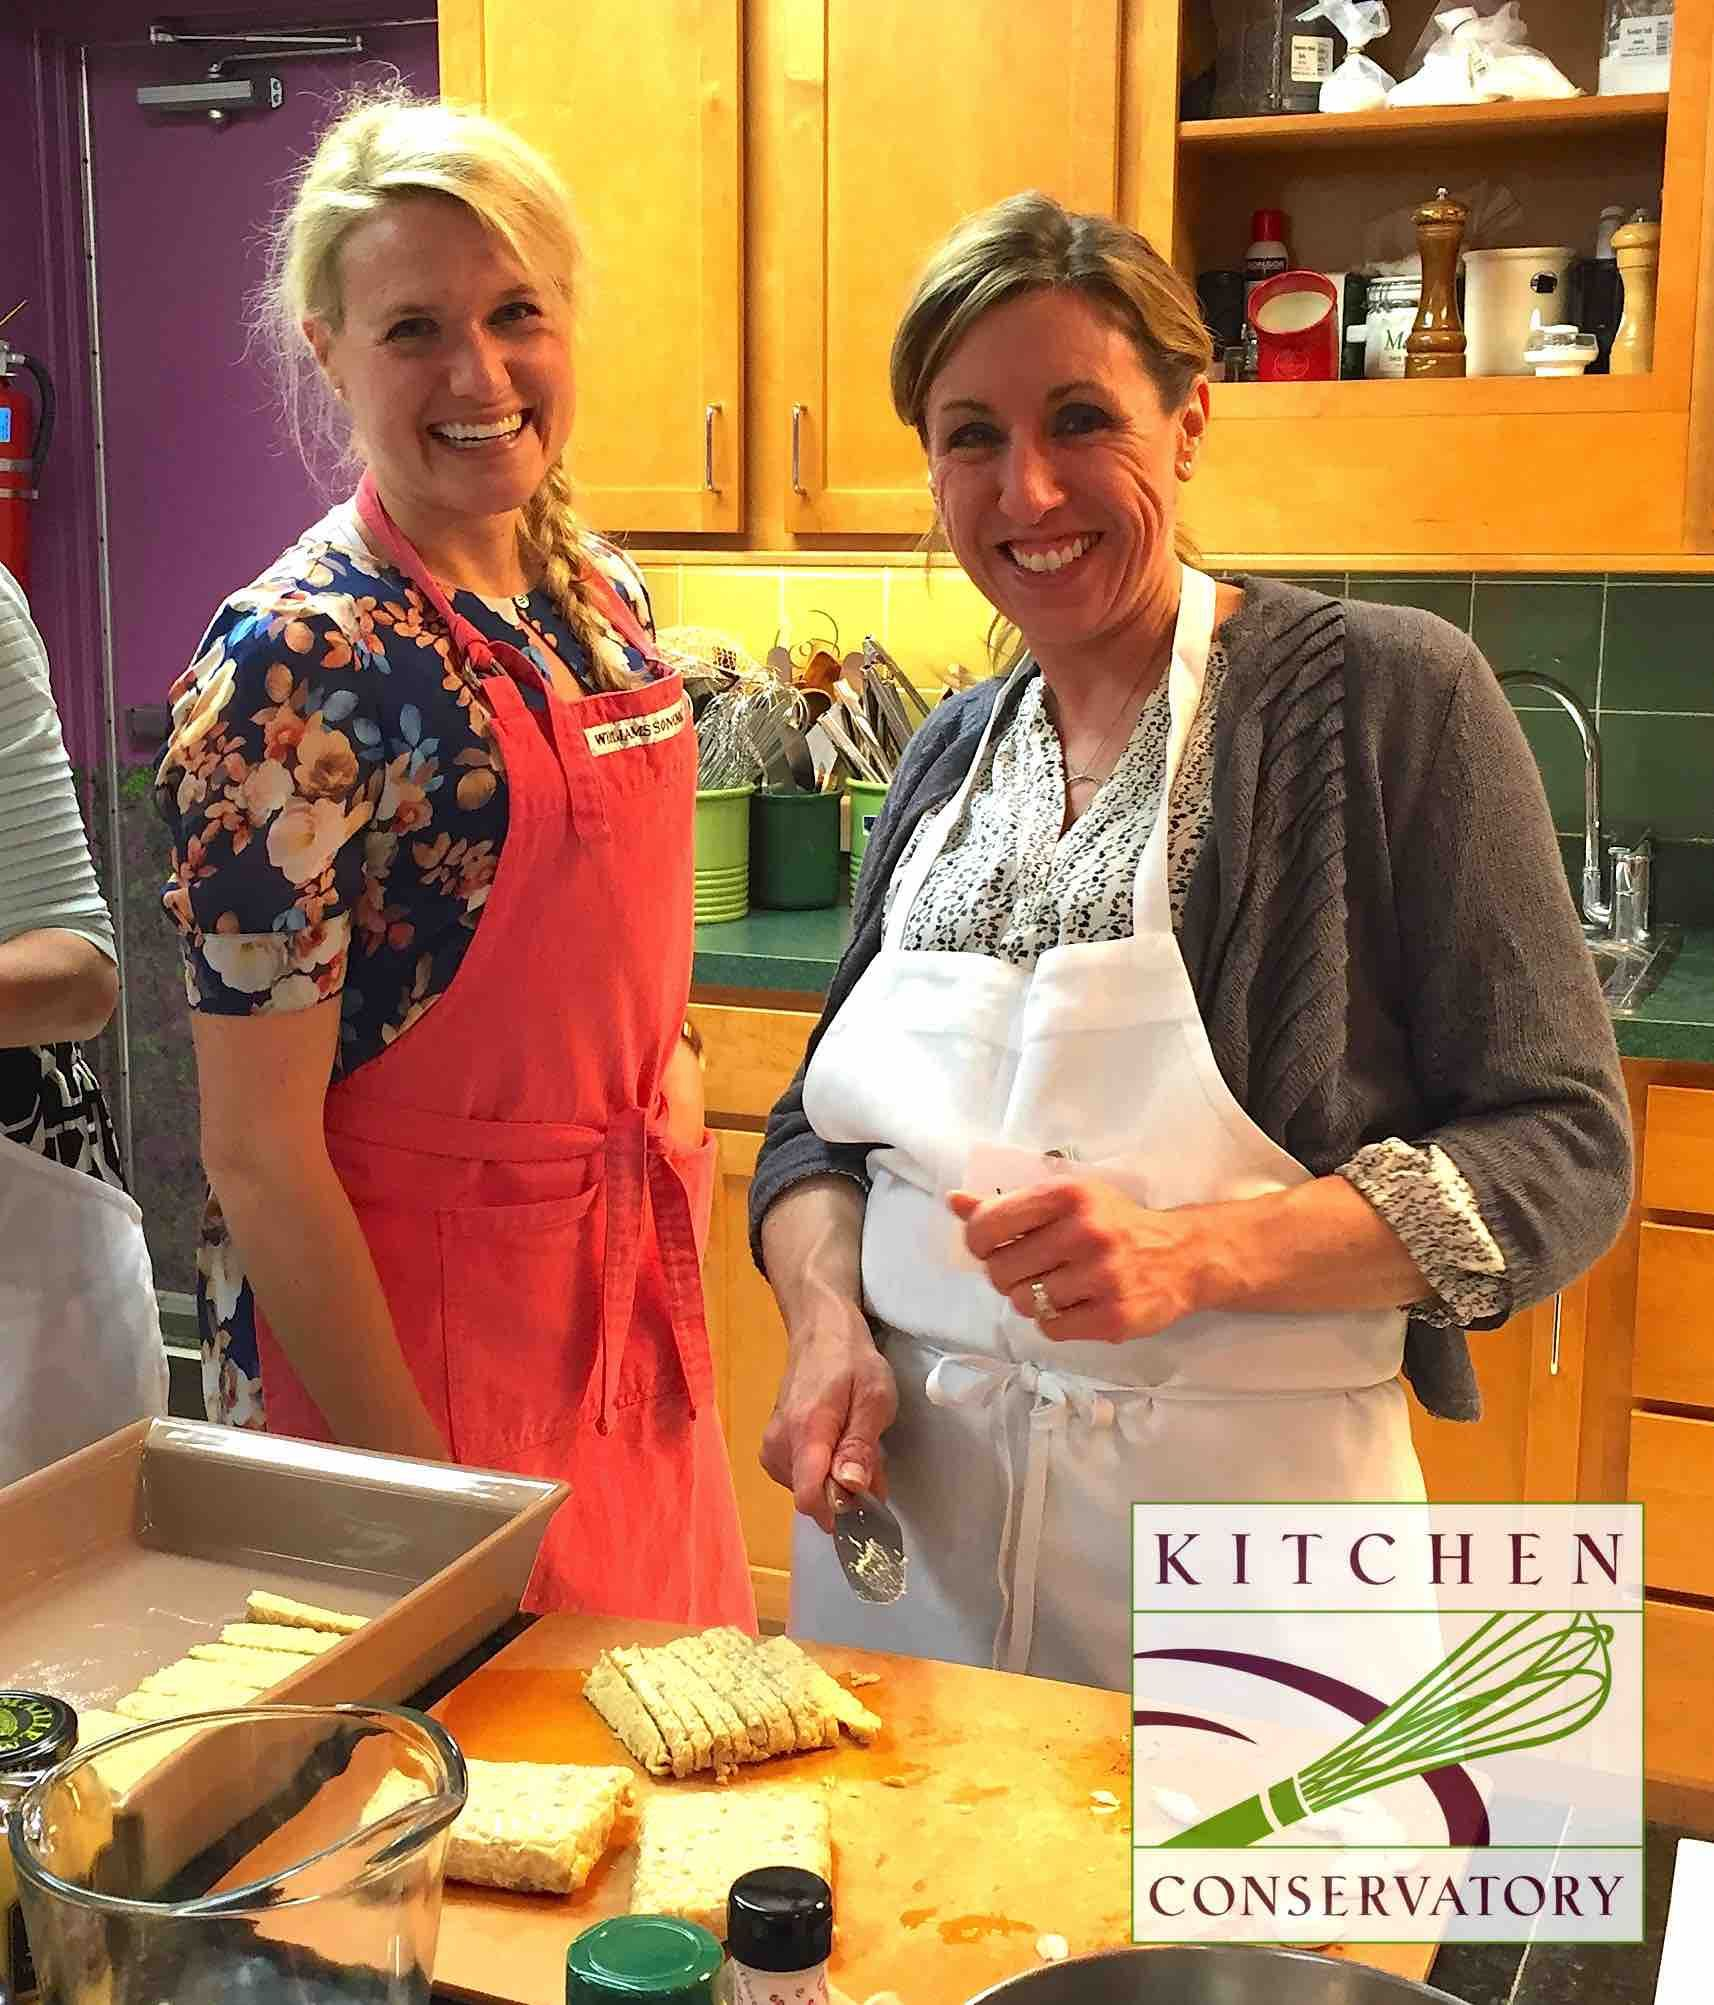 Susan Caciano On Left Teaches Fun And Delicious Vegan Cooking Classes At Kitchen Conservatory Vegan Cooking Classes Cooking Classes Cooking Crab Legs